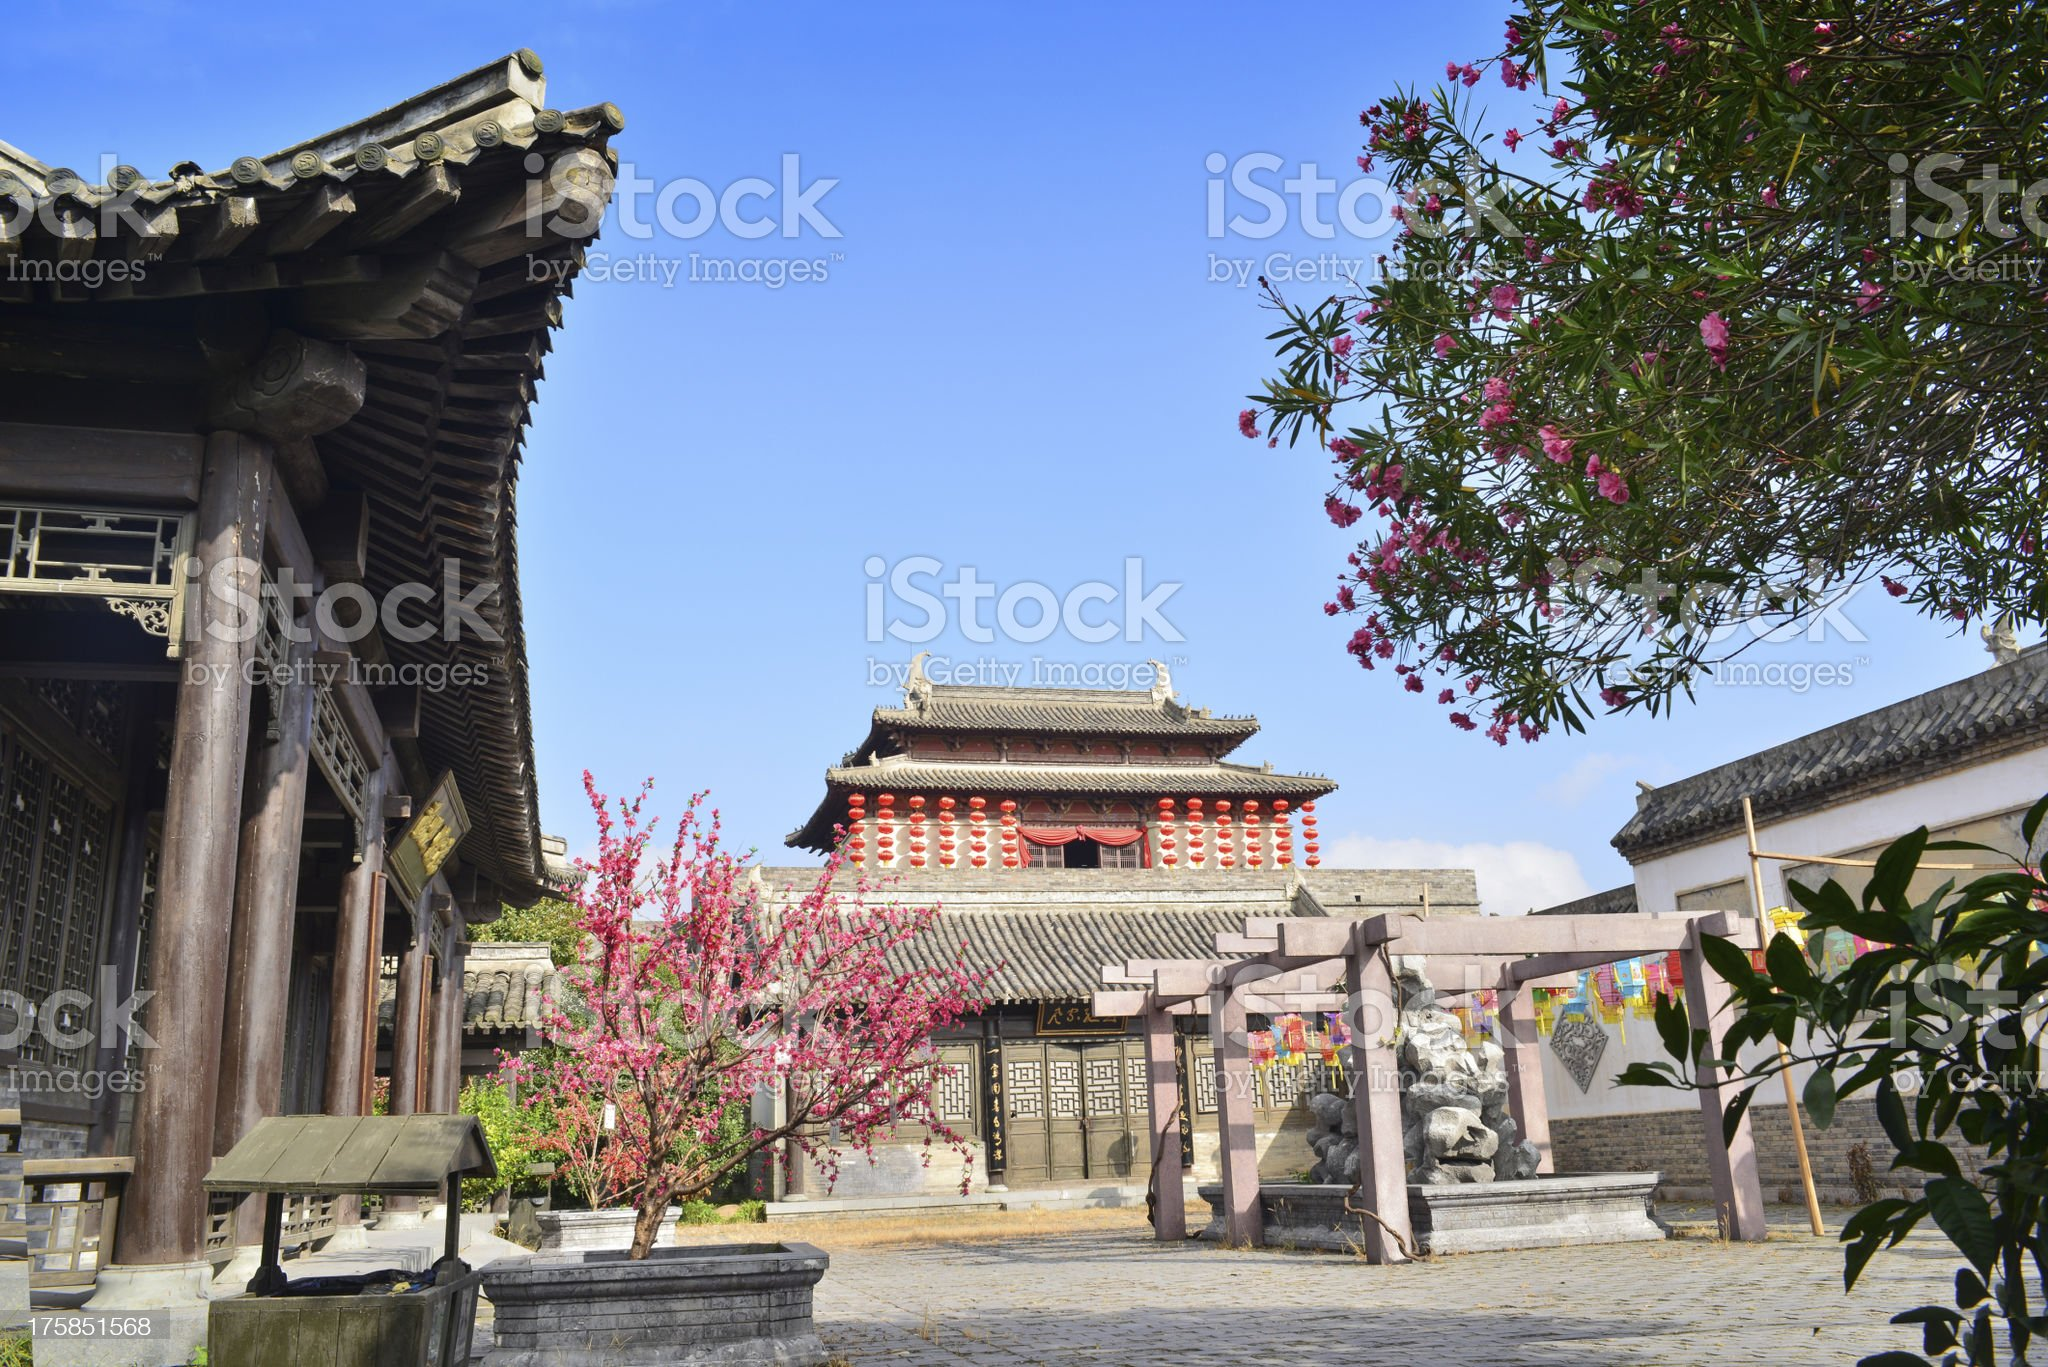 Chinese architecture royalty-free stock photo